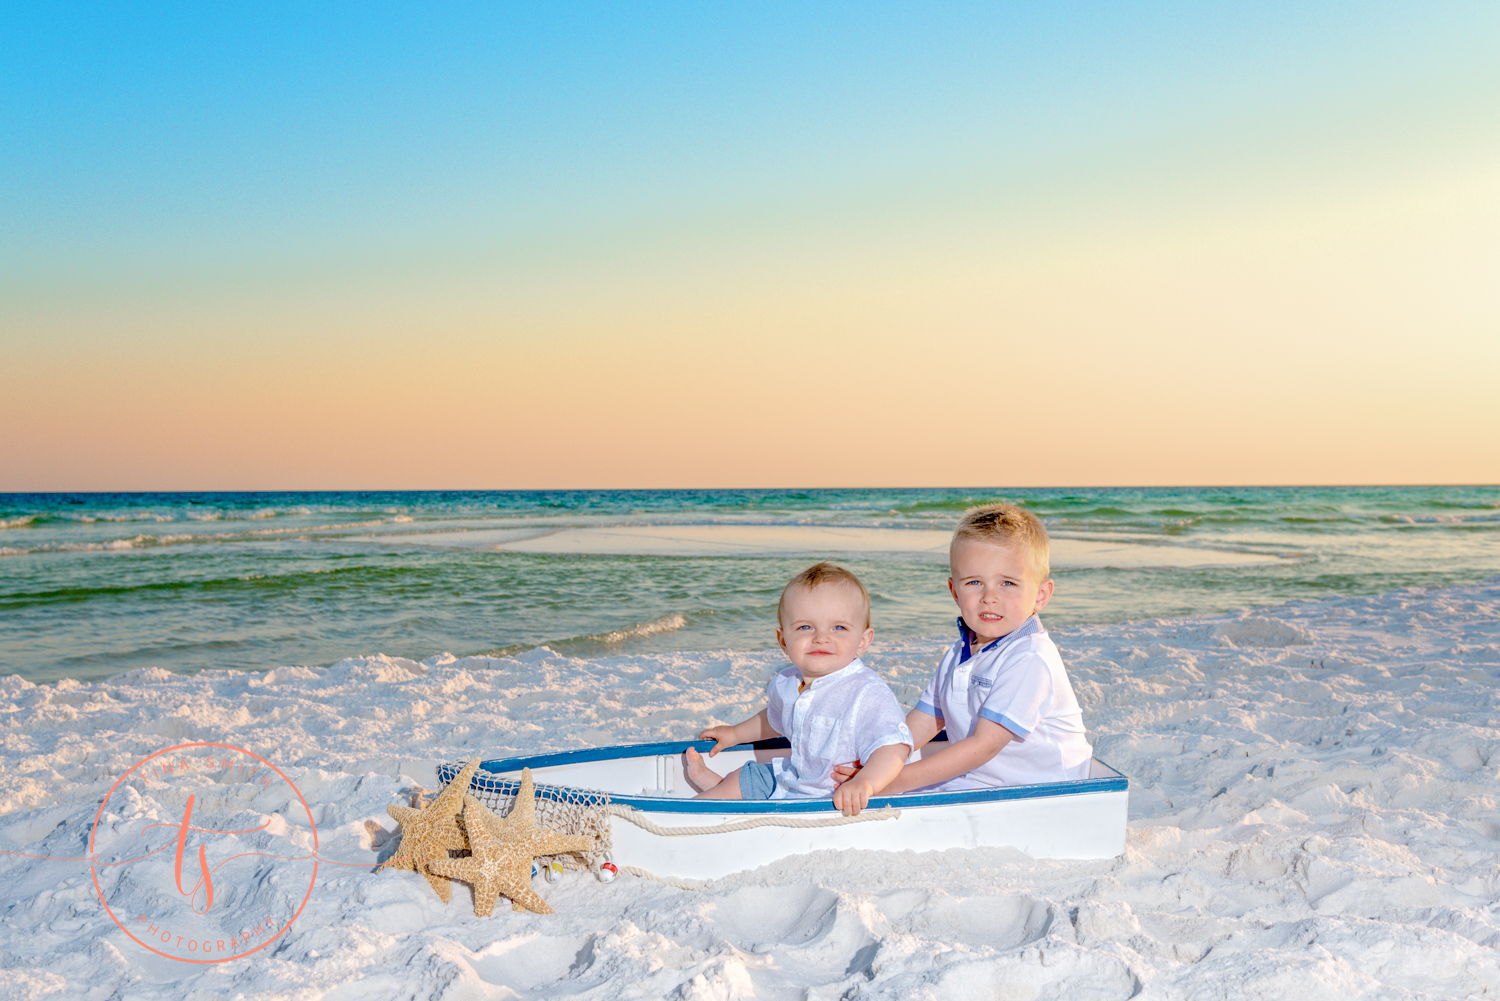 2 brothers sitting on beach in a boat at sunset